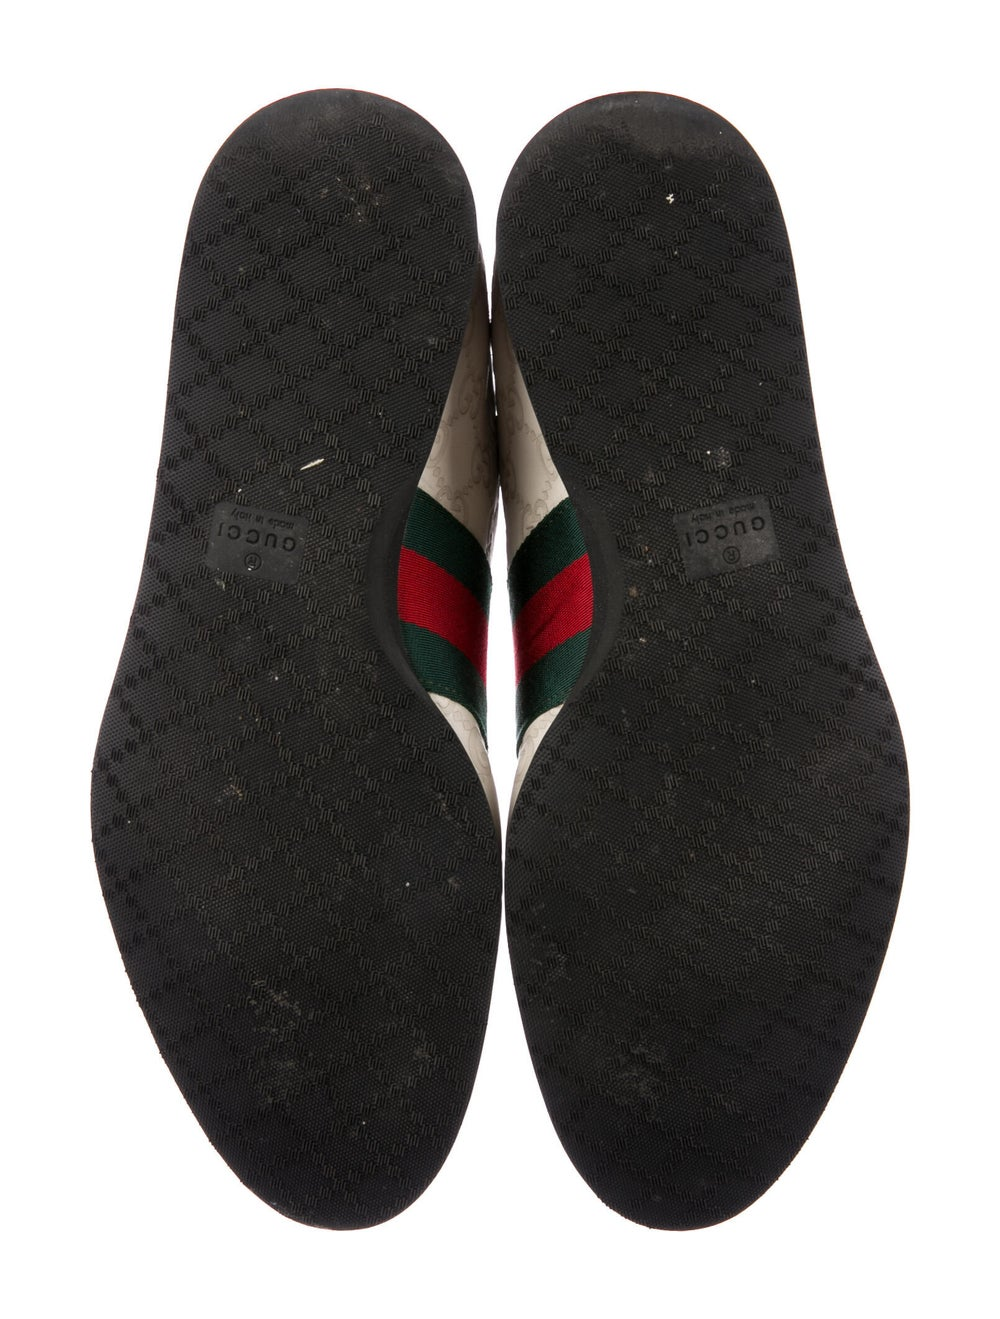 Gucci Web Accent Leather Sneakers - image 5